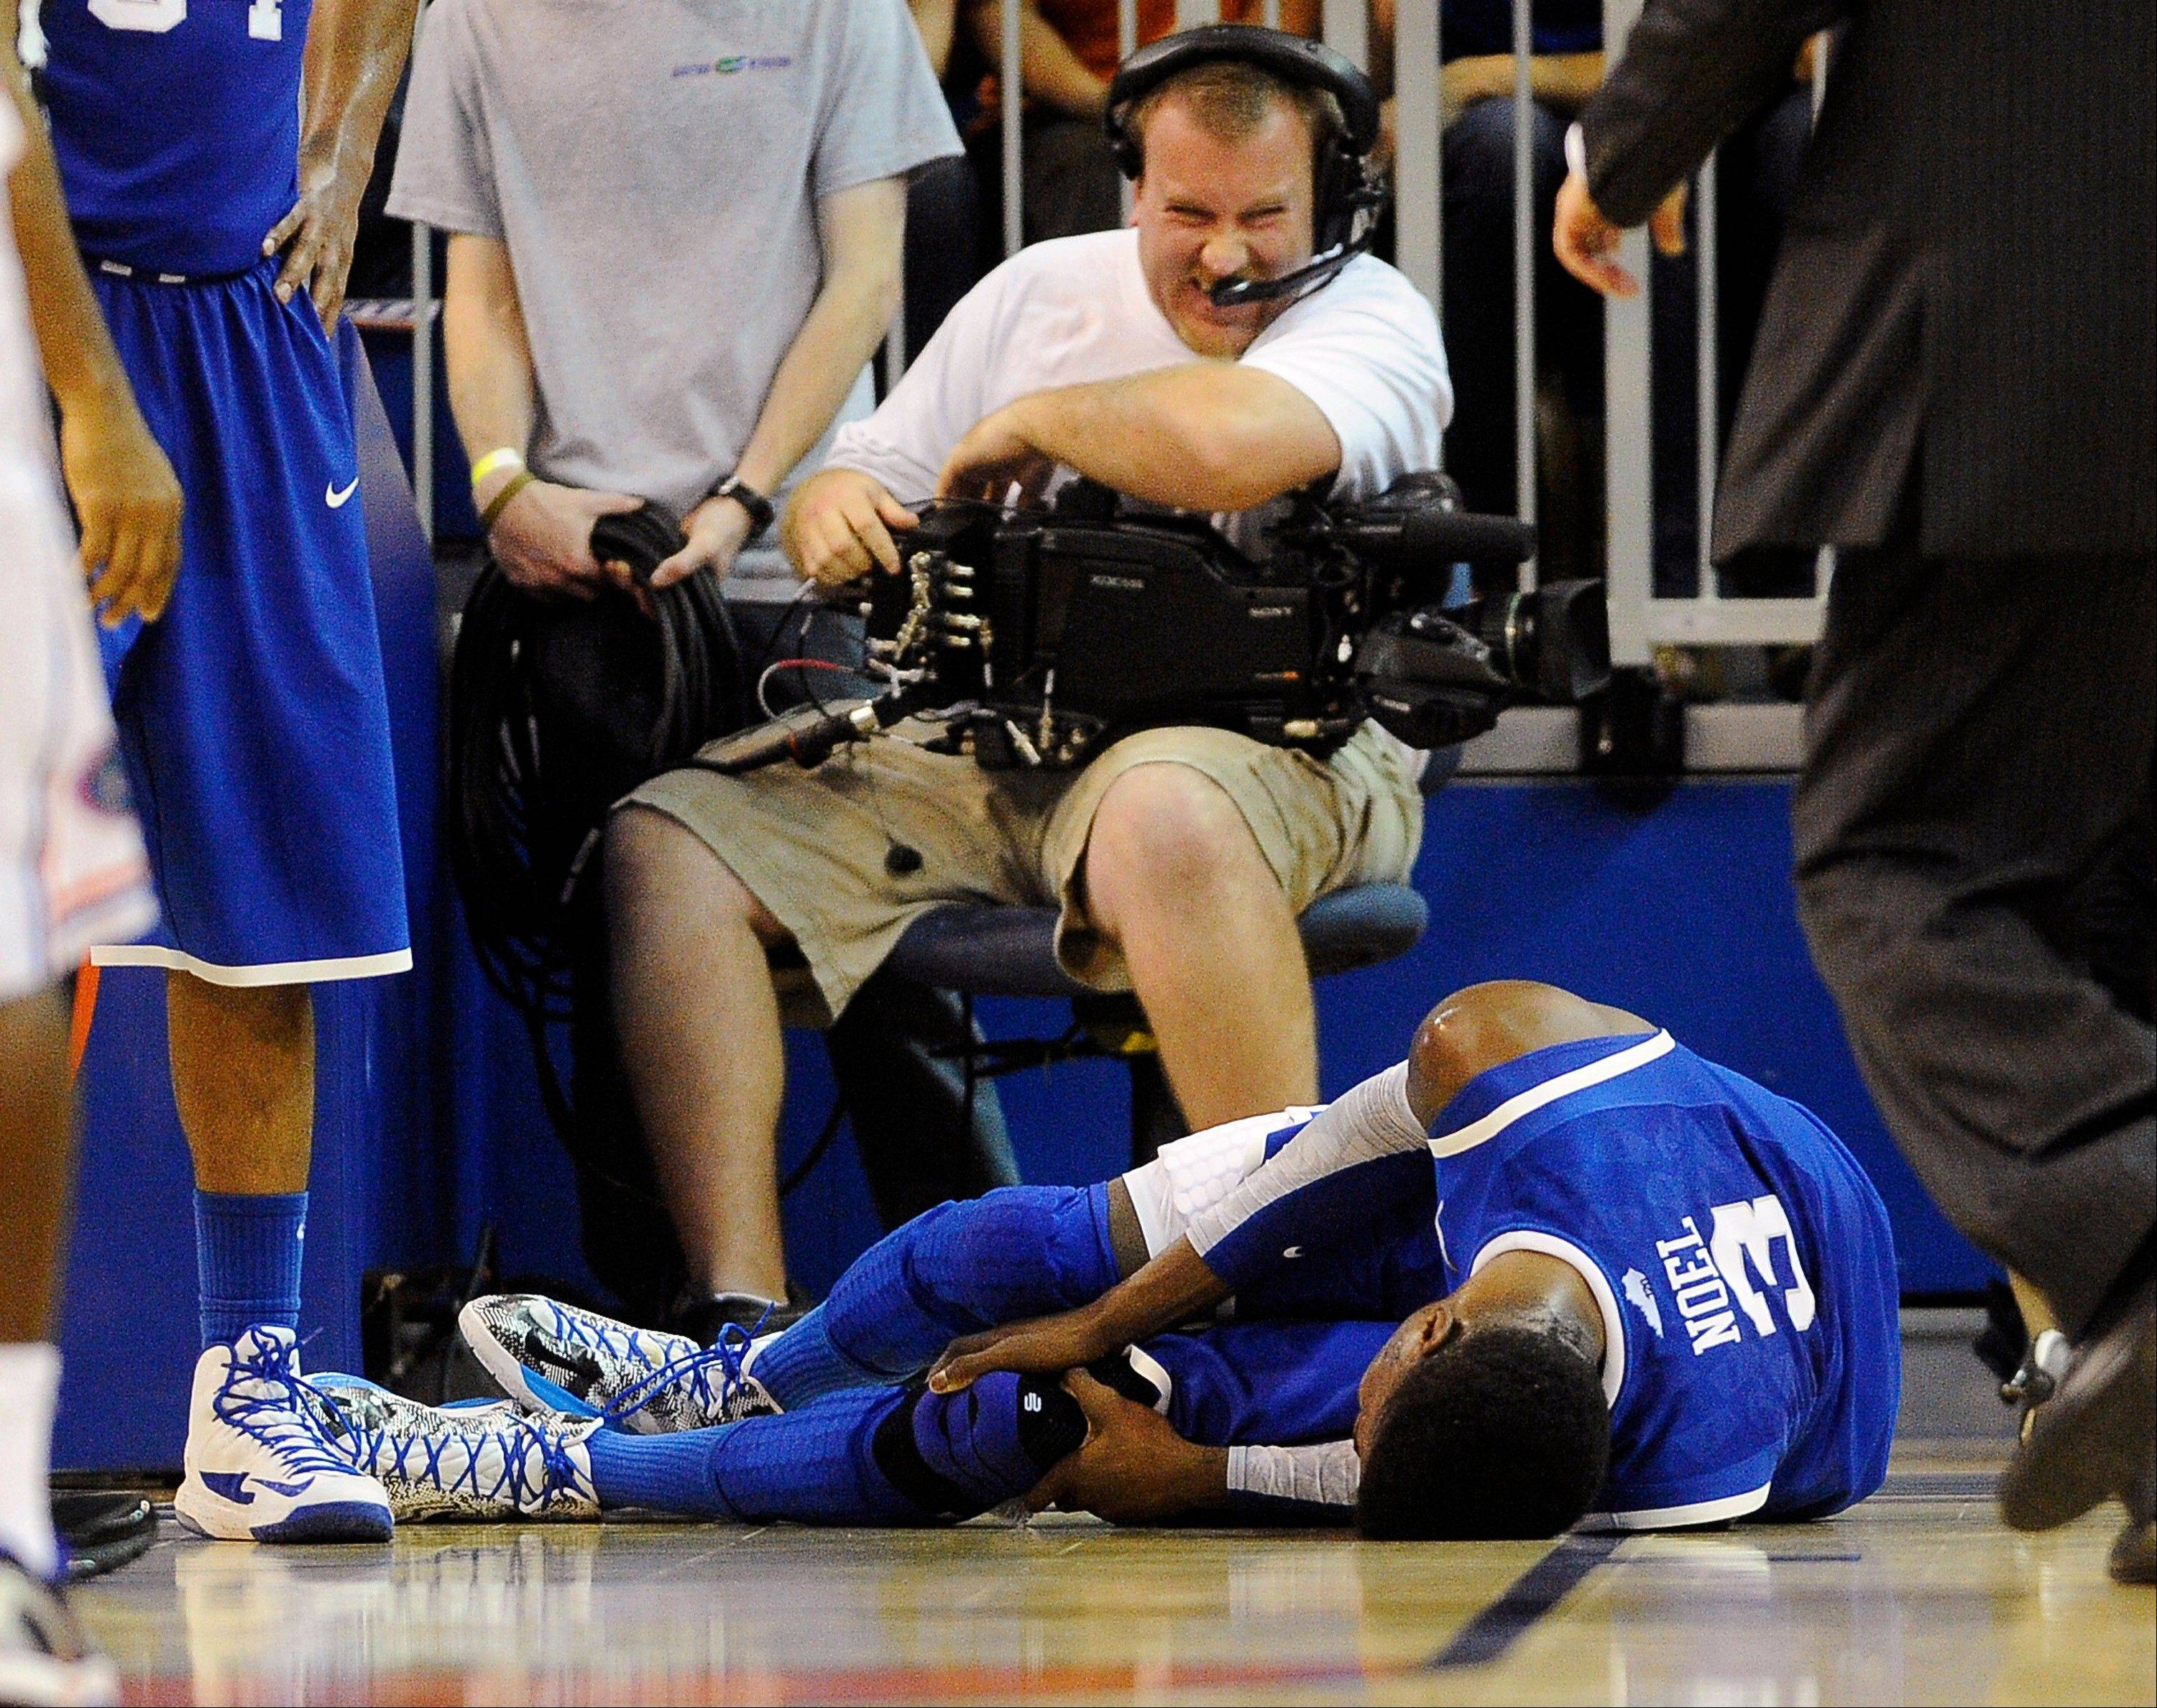 A cameraman grimmaces after a collision with Kentucky forward Nerlens Noel (3) during the second half of an NCAA college basketball game against Florida in Gainesville, Fla., Tuesday, Feb. 12, 2013. Noel injured his left knee and did not return. Florida won 69-52.